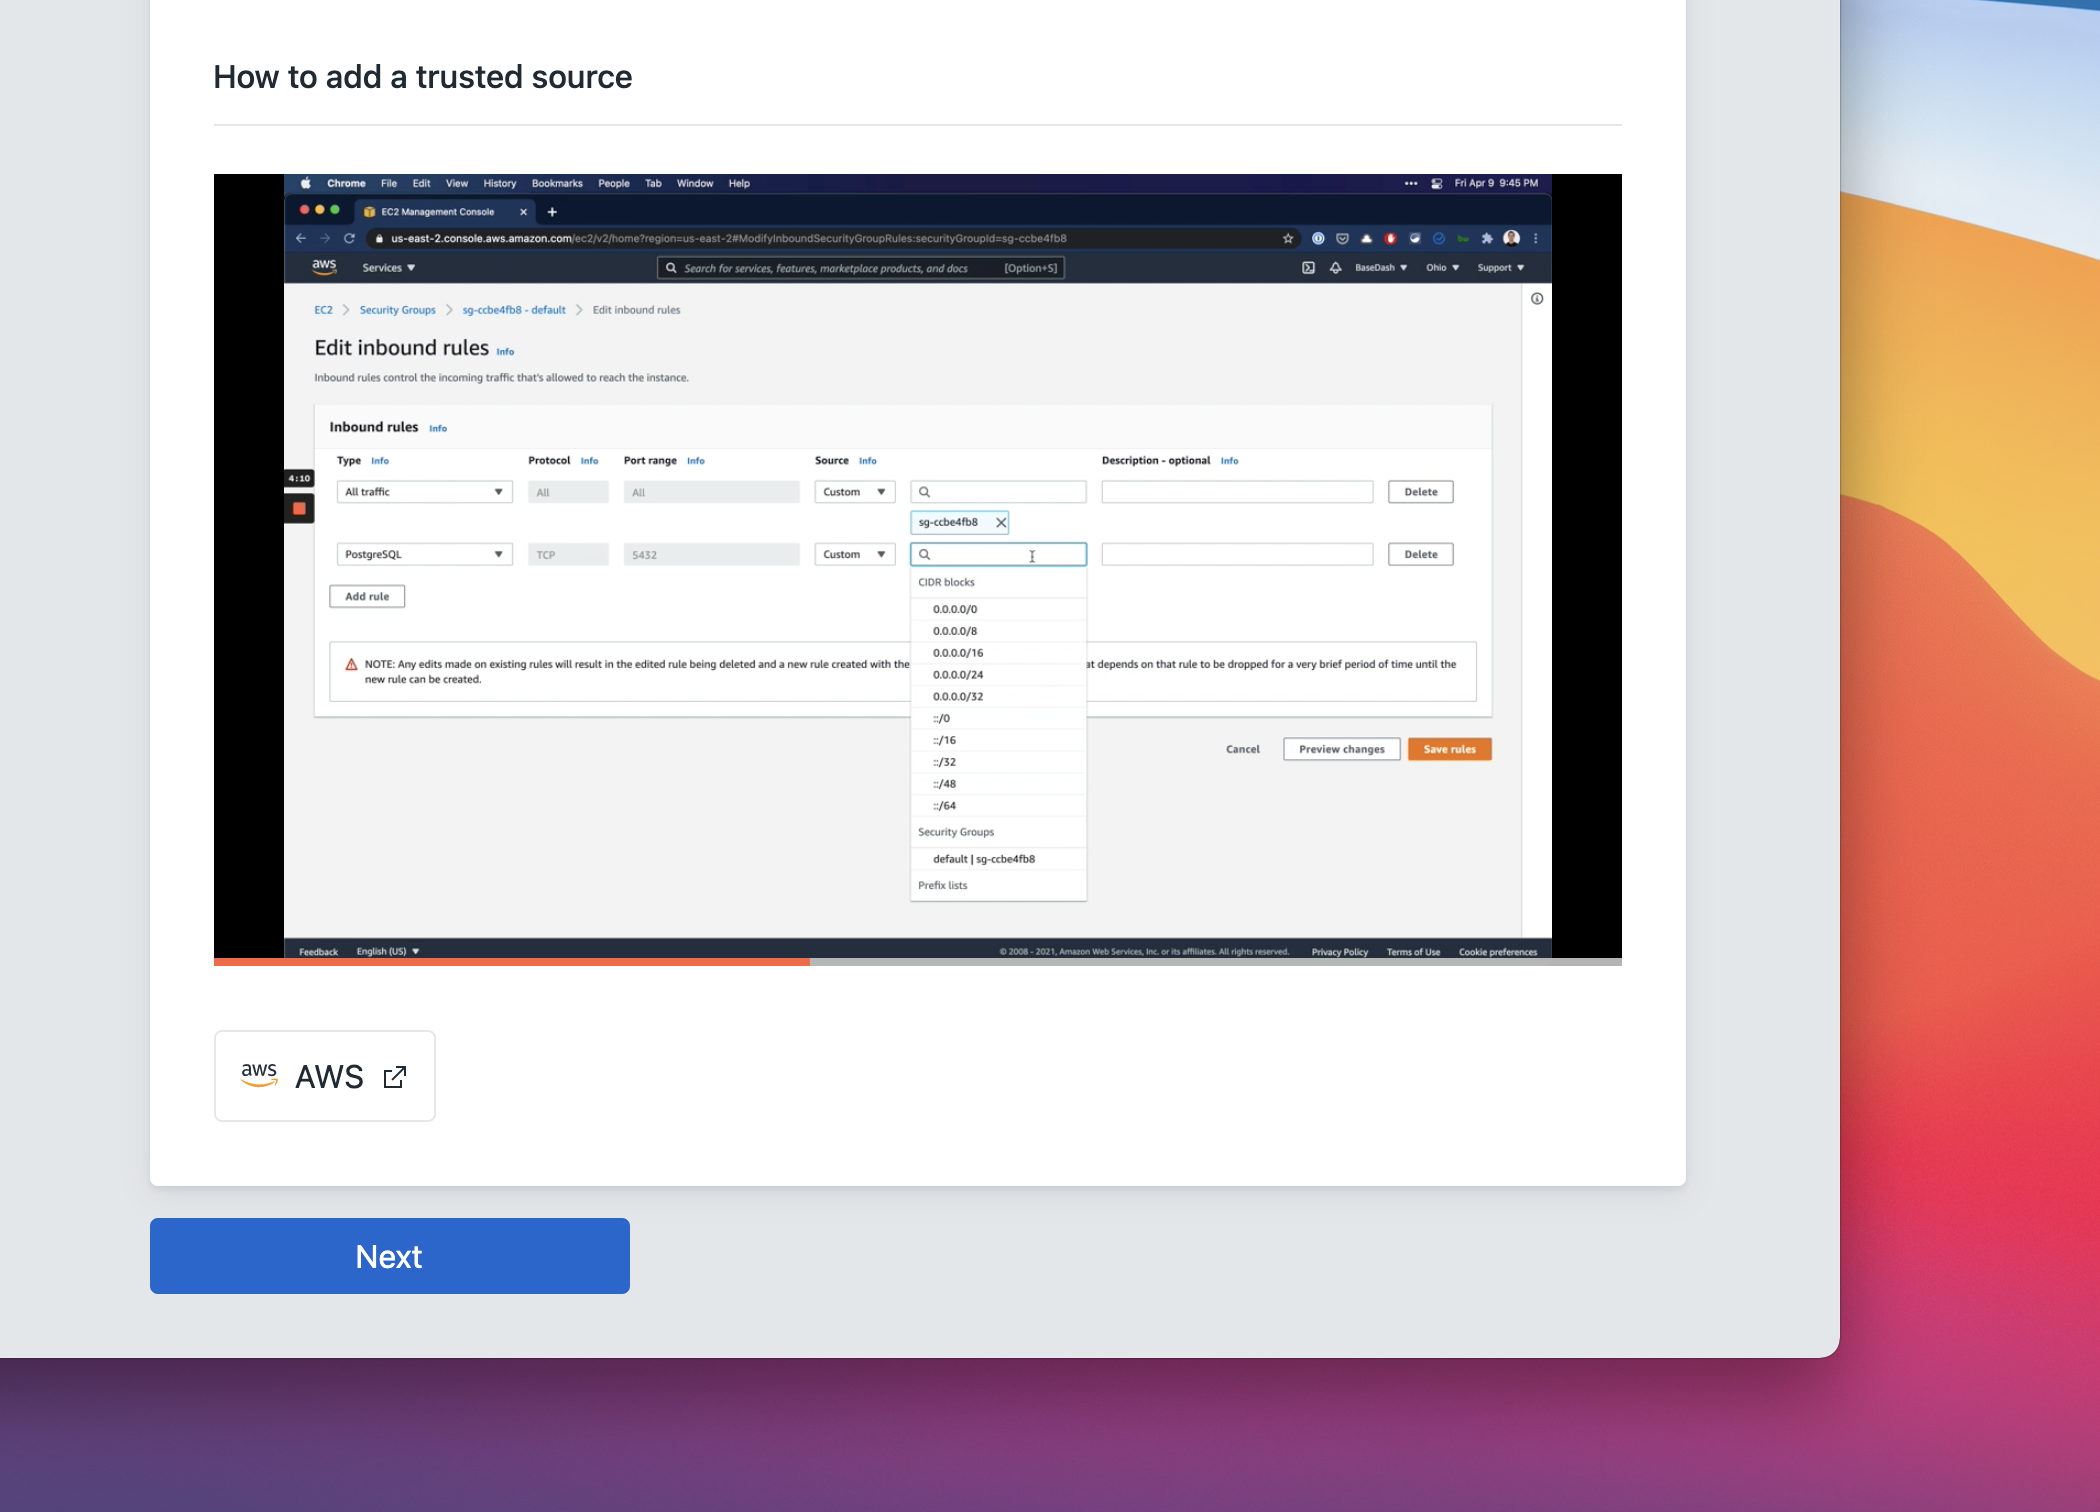 Screenshot of BaseDash showing a video of how to add BaseDash as a trusted source.